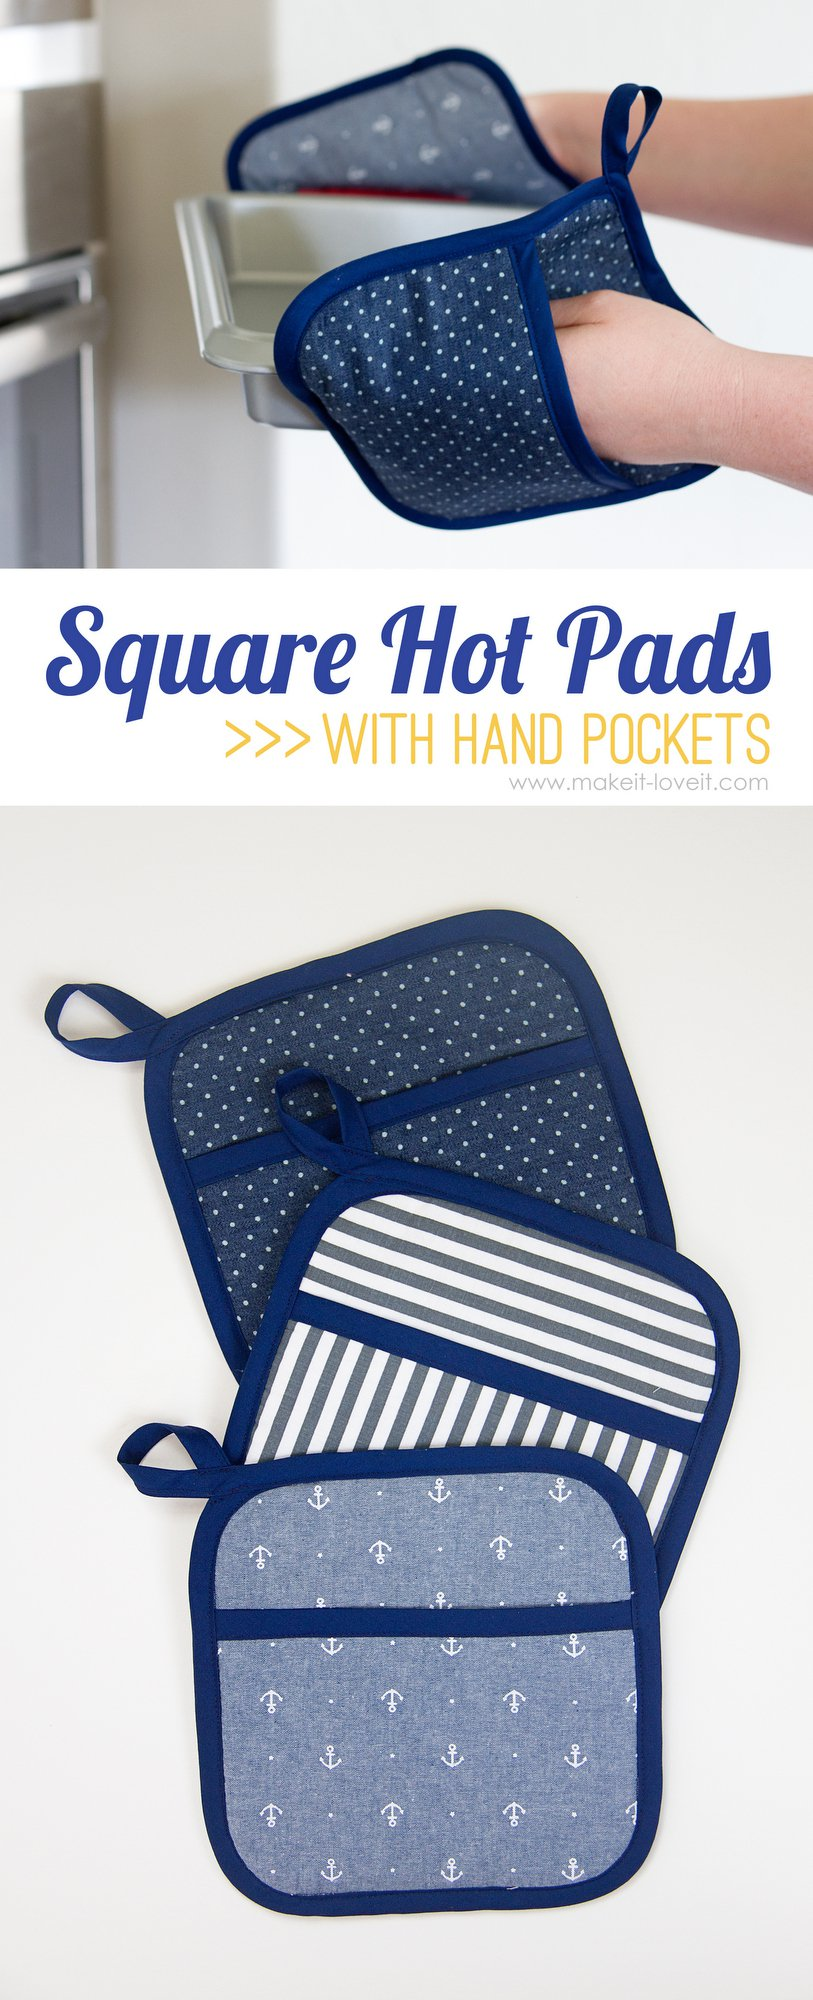 Square-Hot-Pads-with-Hand-Pockets-1